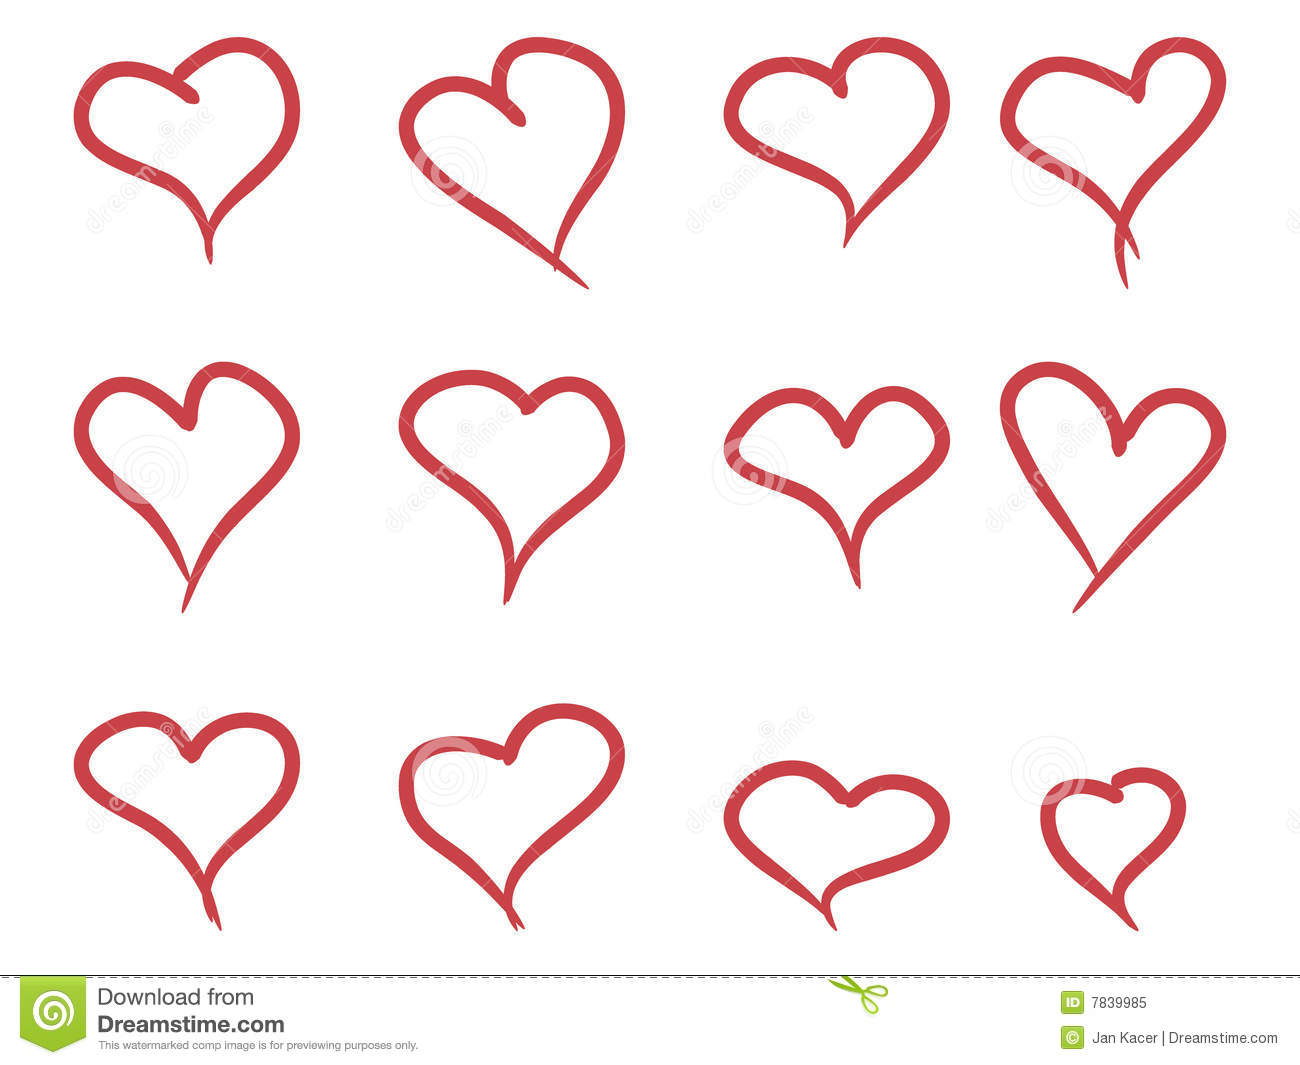 Cute Heart Drawing At Getdrawings Com Free For Personal Use Cute